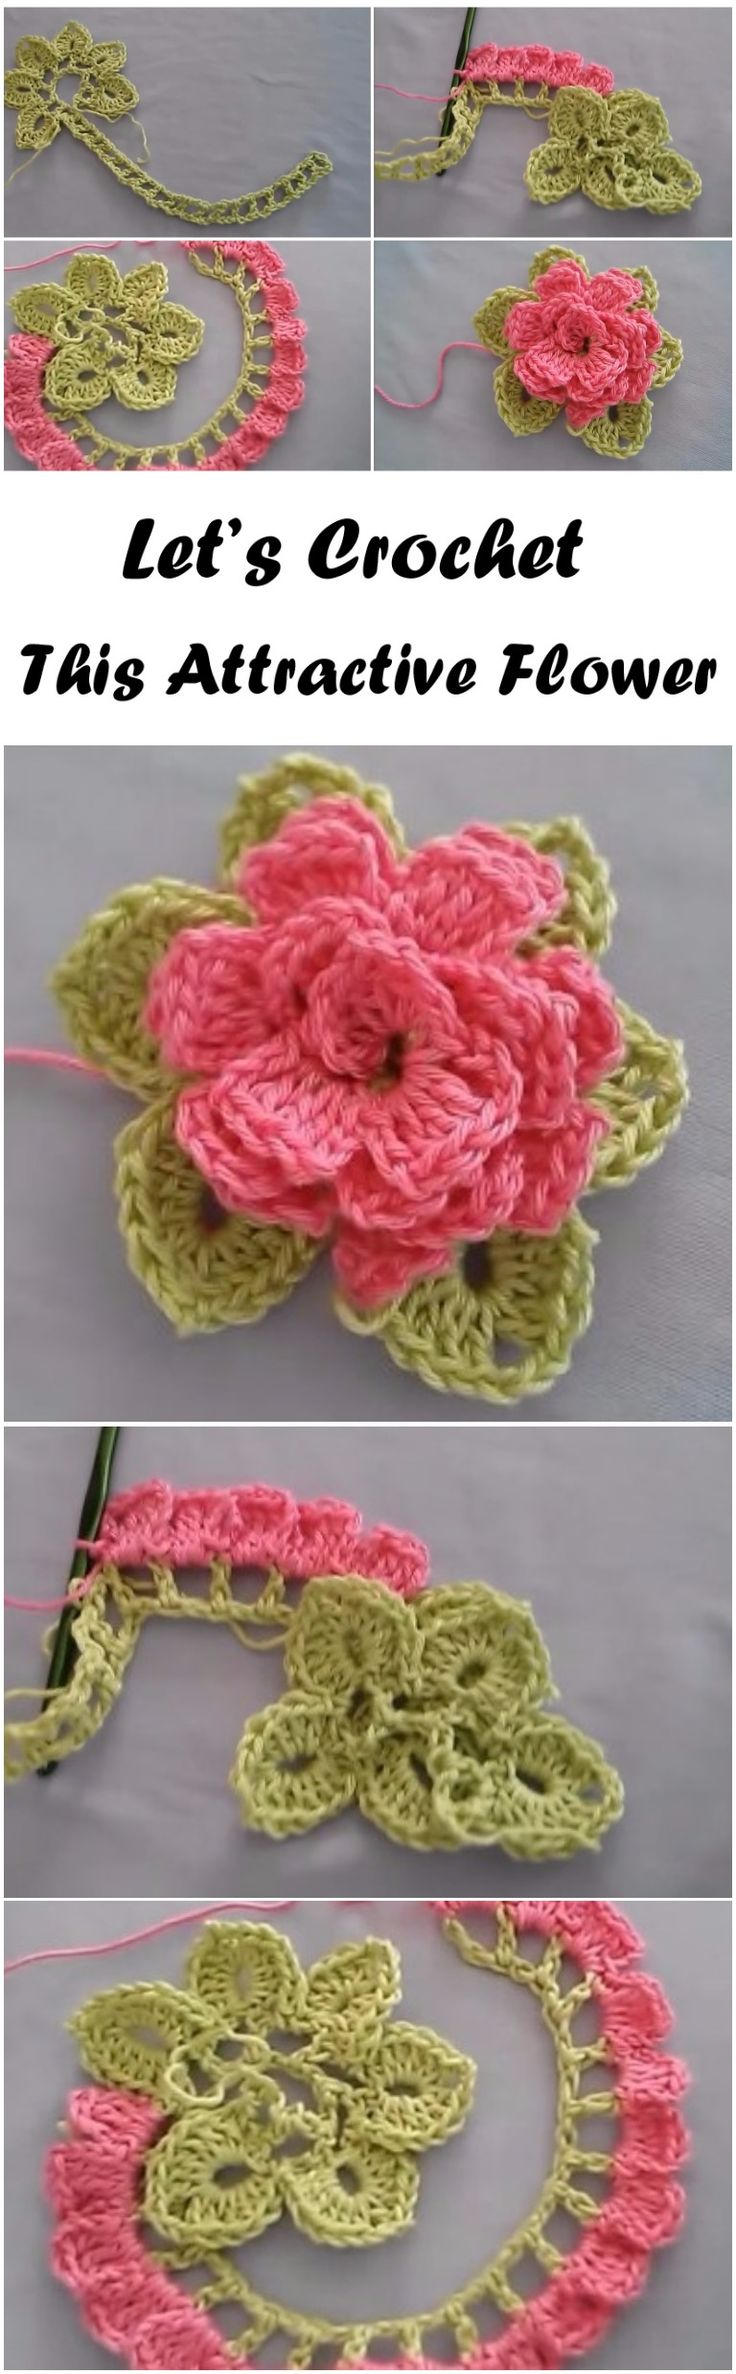 102 Best Croche Flores Images On Pinterest Crocheted Flowers Rose Crochet Crochetflowers Pretty Flower Diagram This Attractive Step By